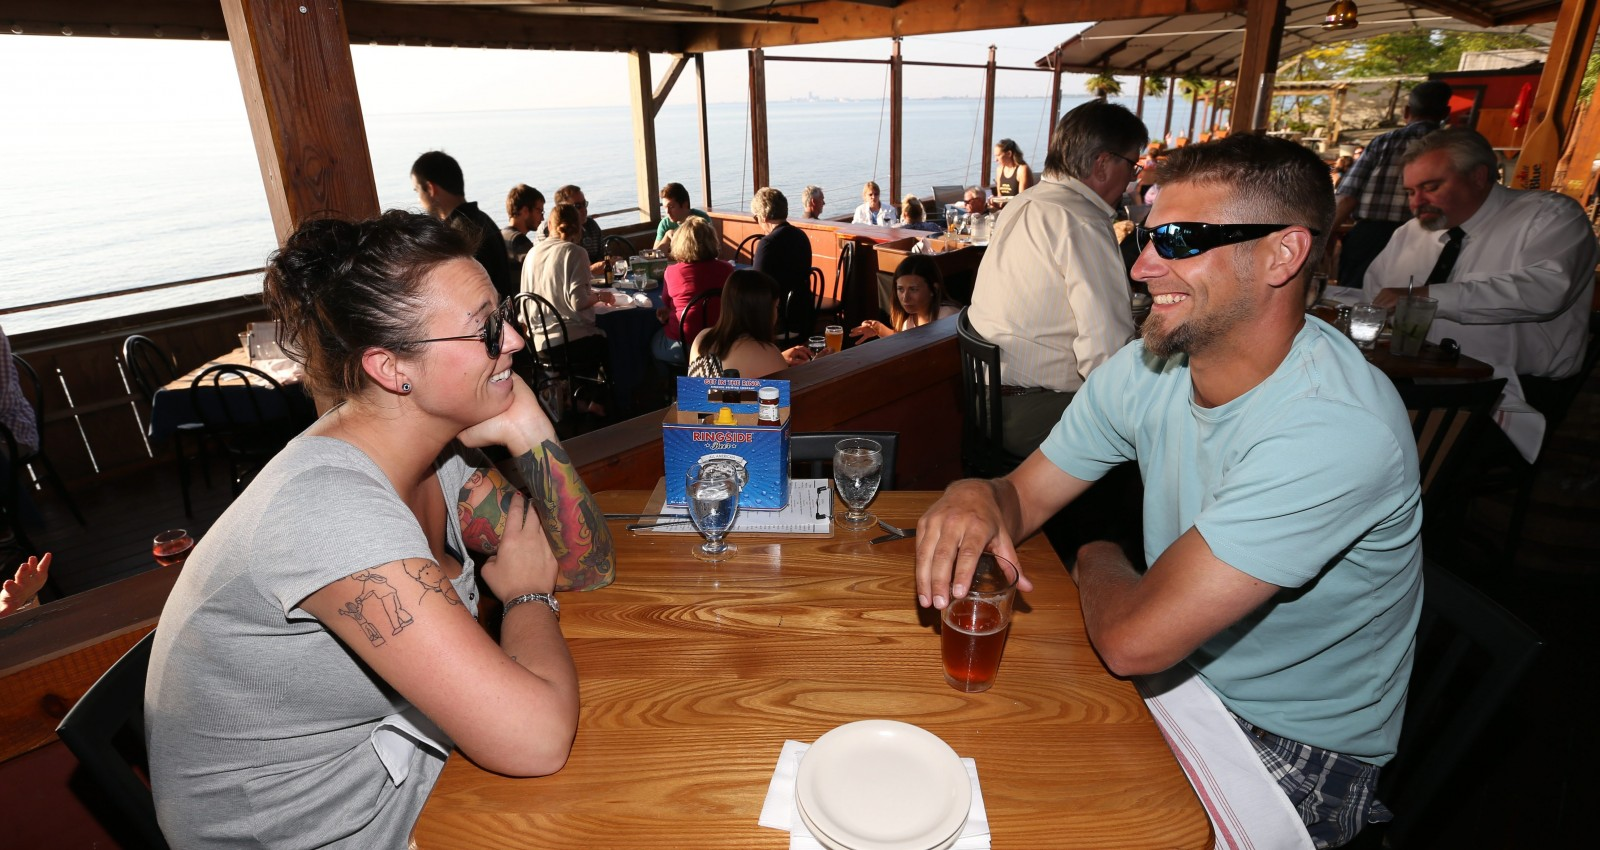 Emily Harris of Blasdell and Mike Matesic of Lakeview hang out on the patio at the Public House on the Lake in Hamburg. (Sharon Cantillon/Buffalo News)